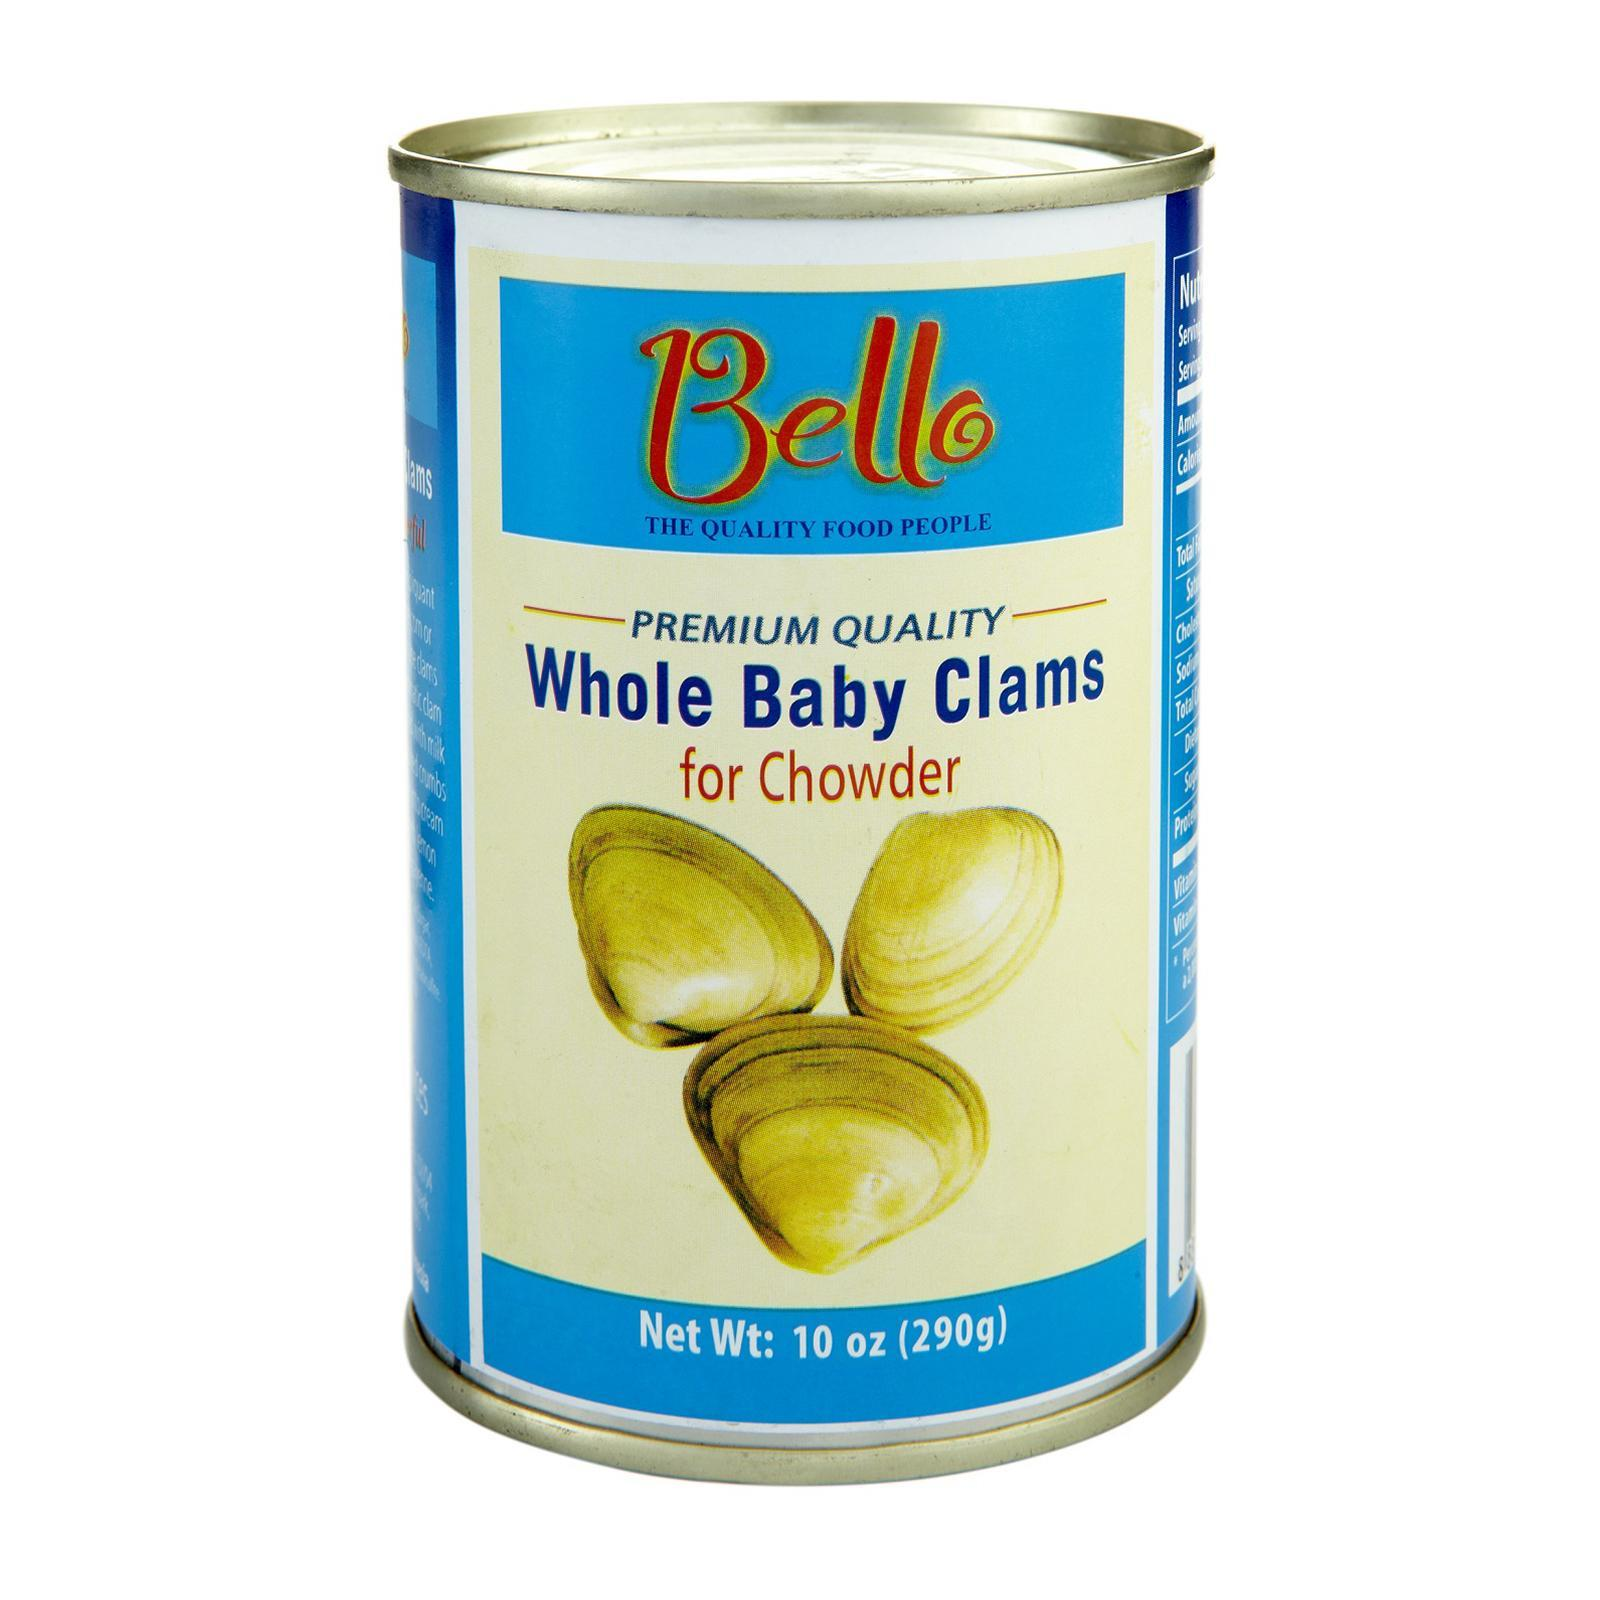 Bello Whole Baby Clams